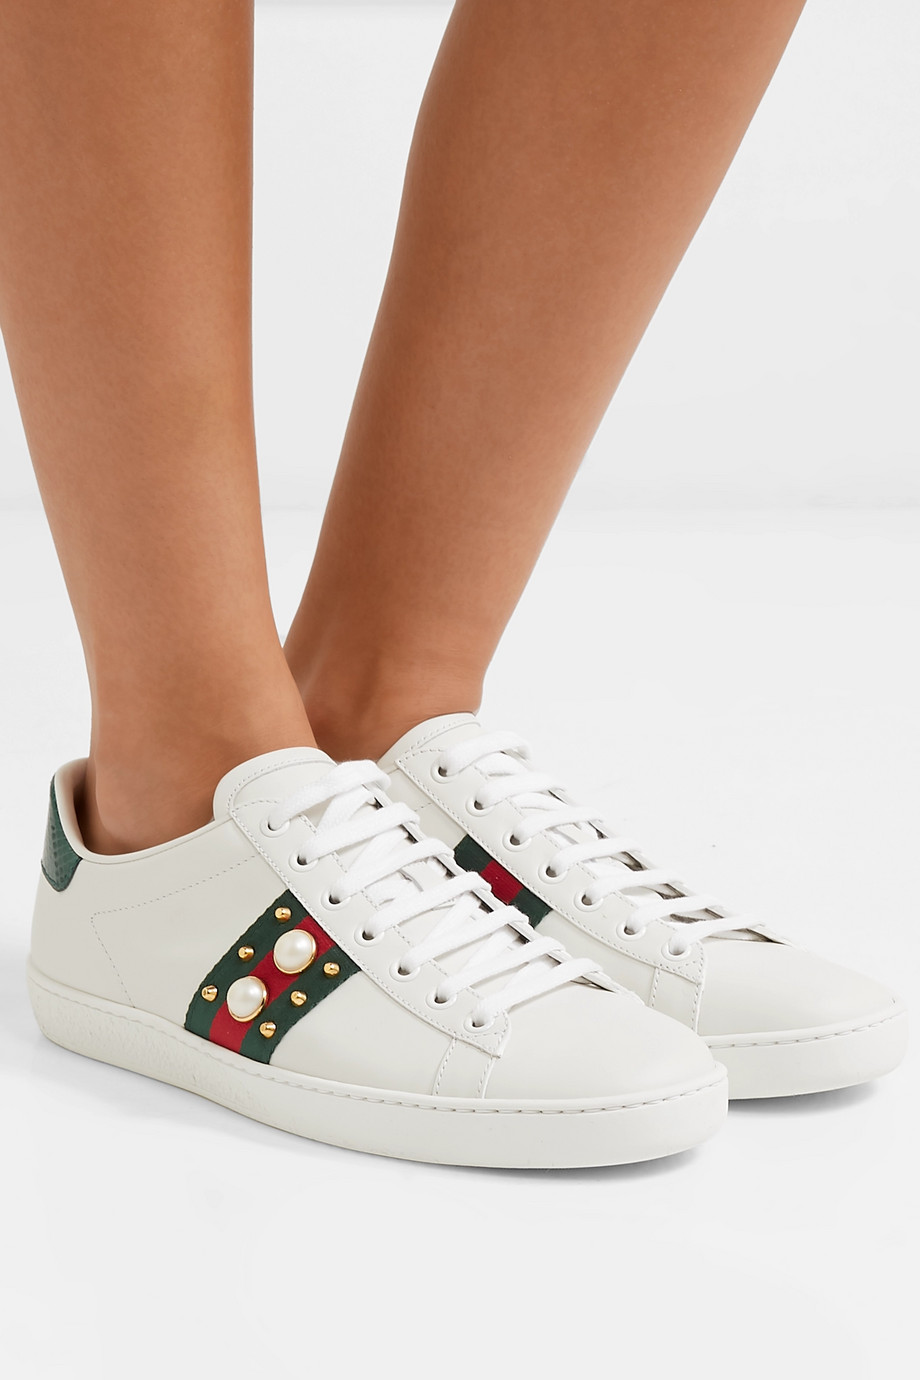 Gucci Ace faux pearl-embellished metallic watersnake-trimmed leather sneakers